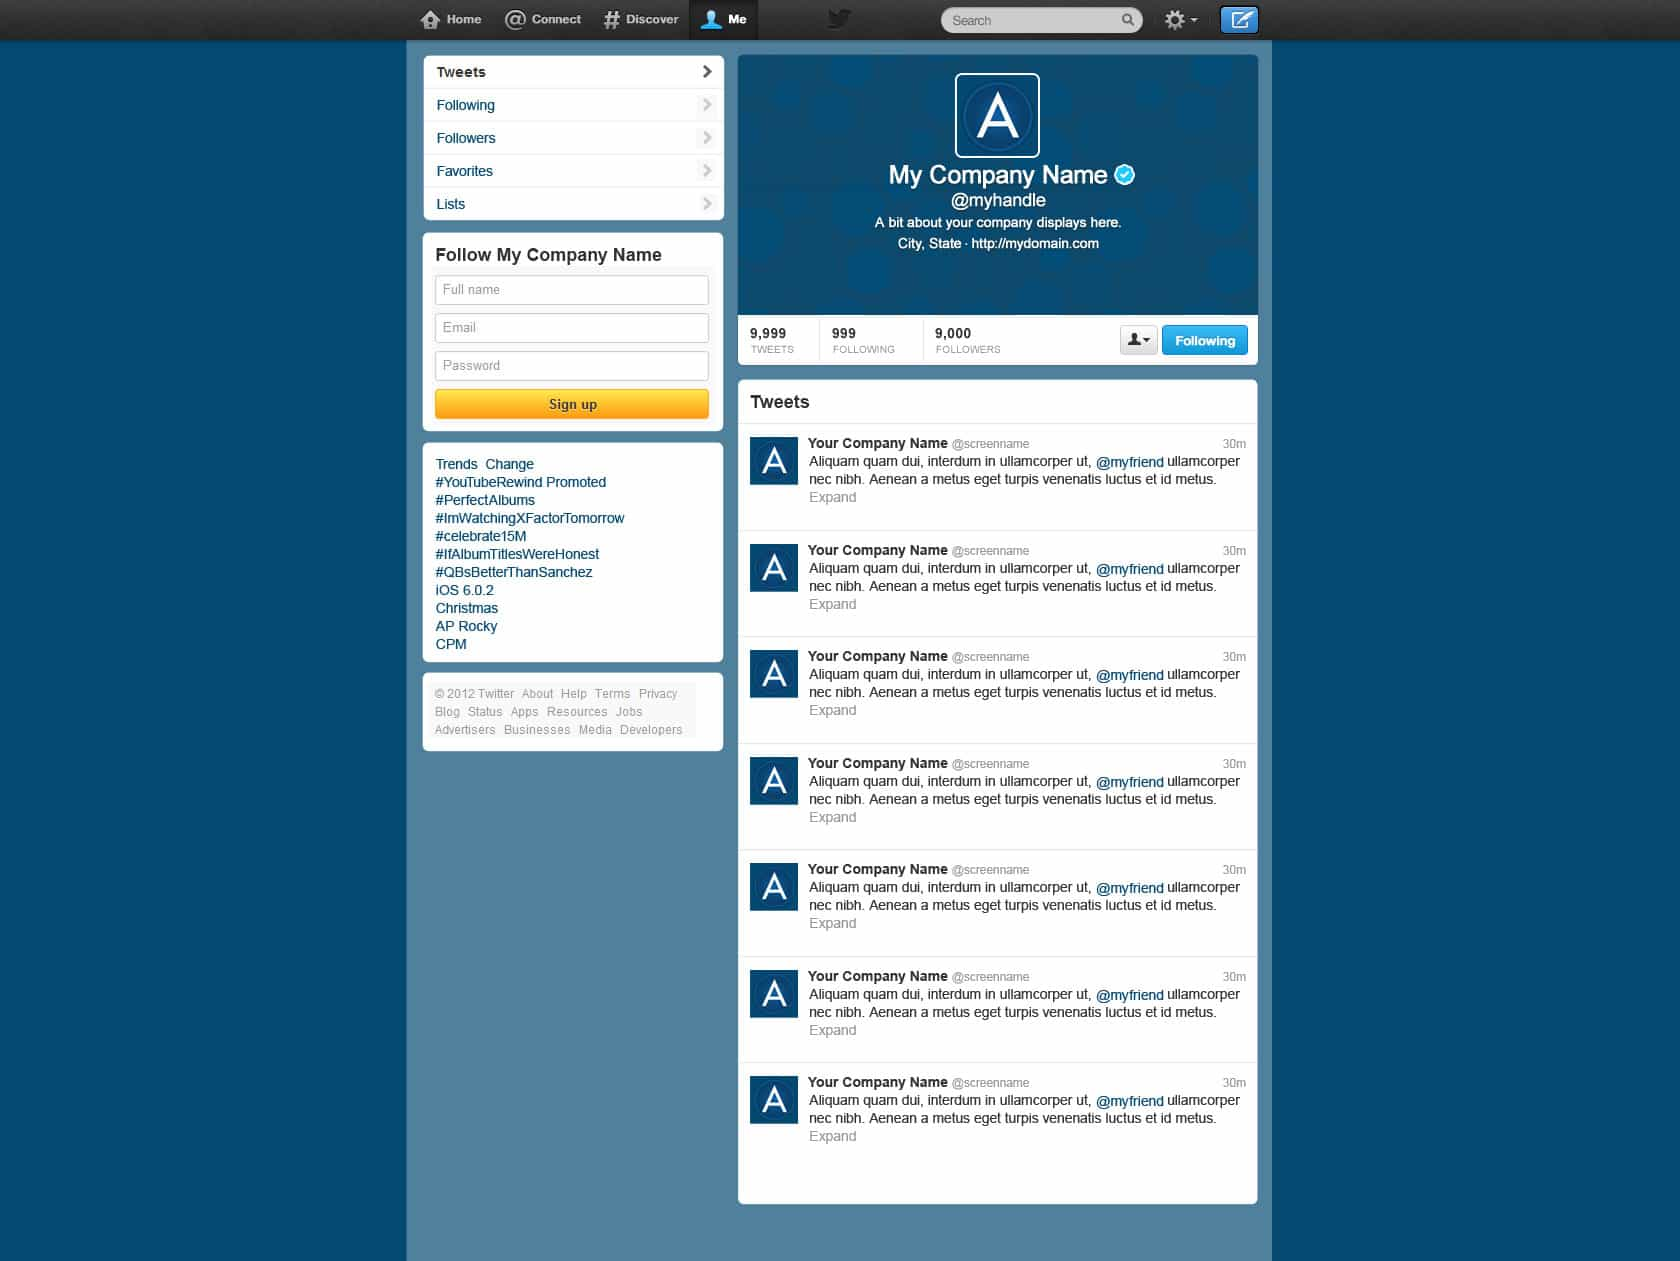 Adventos -- Small Business Twitter Layout